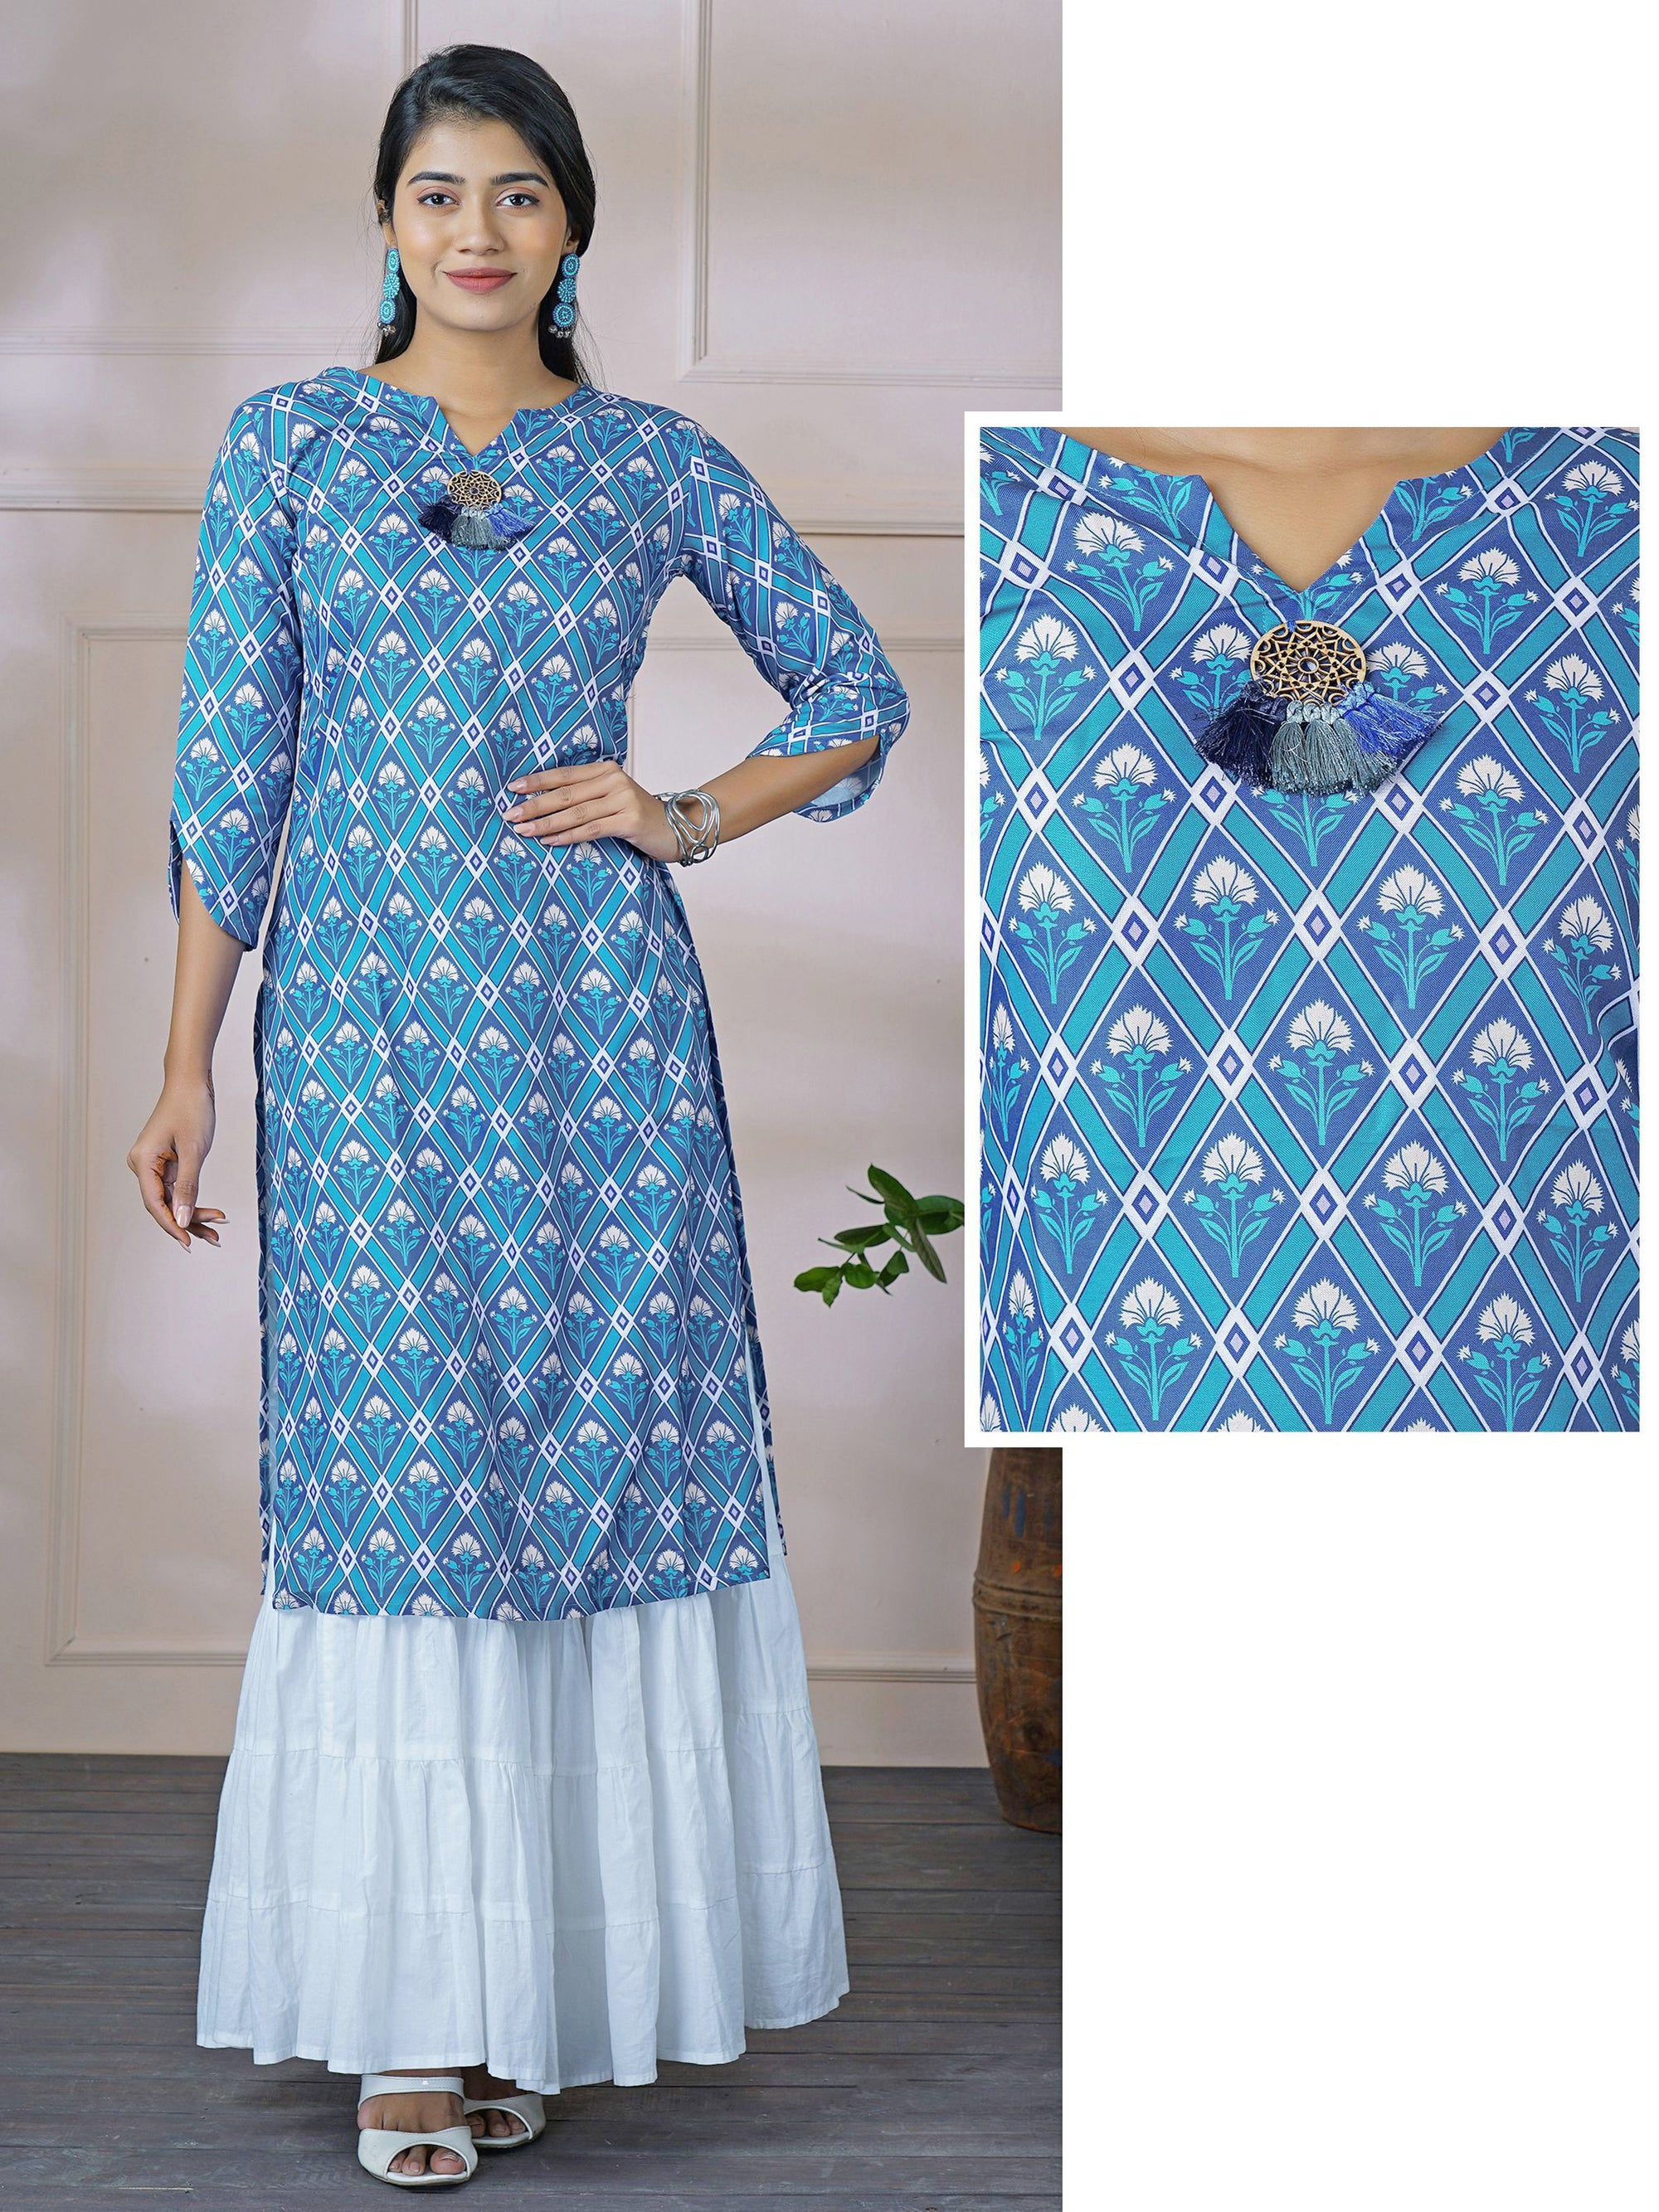 Star Chakra Engraved Wooden Tassel & Diamond Printed Kurti